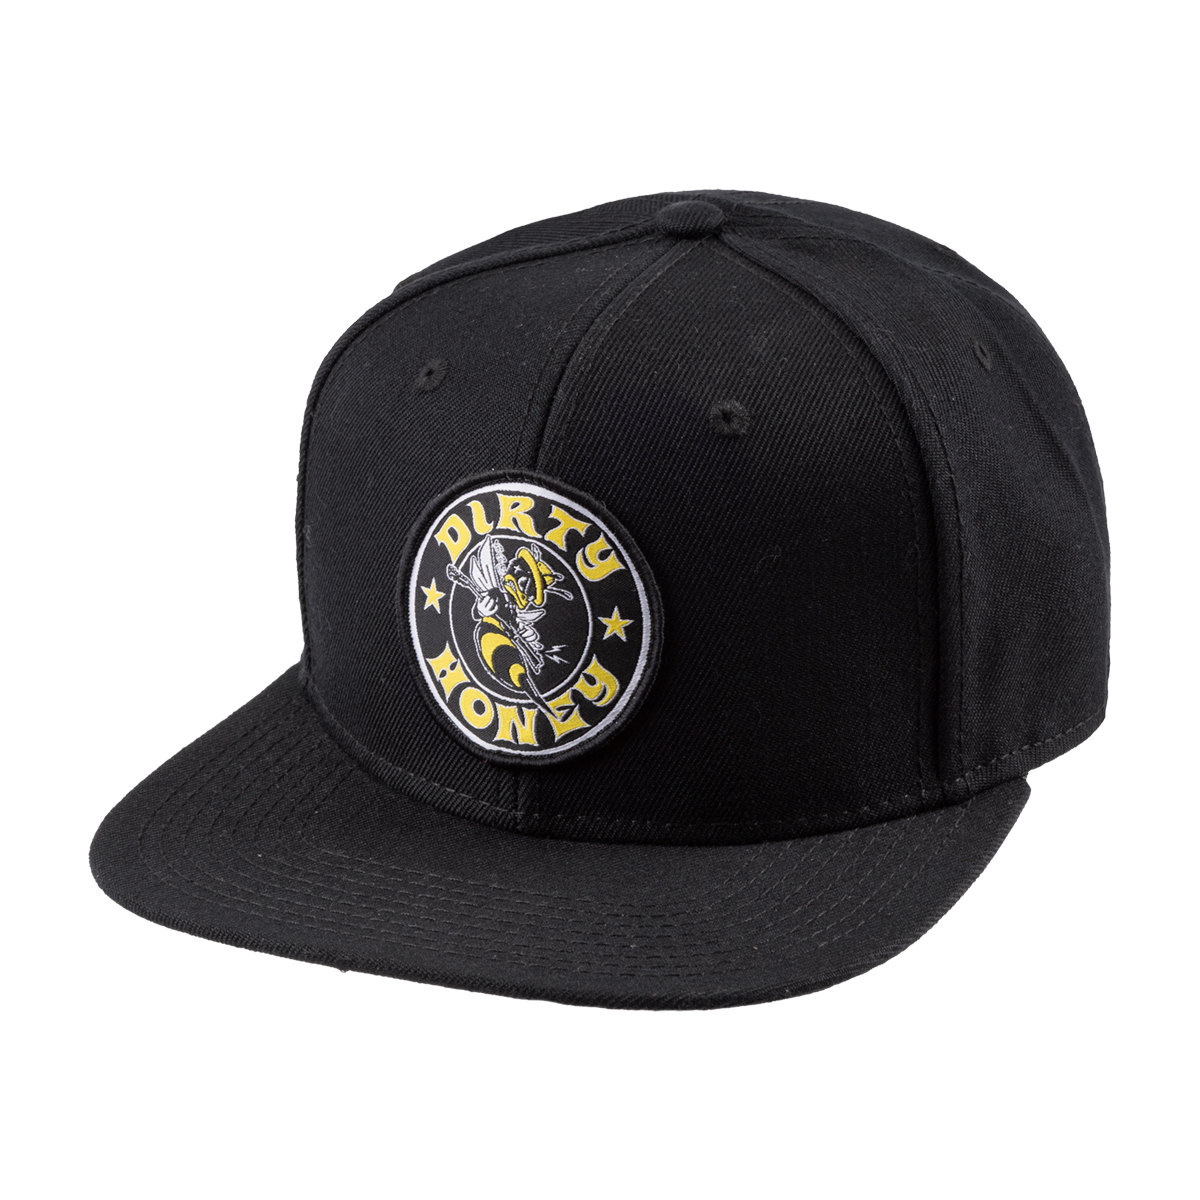 Stinger Patch Flat Brim Hat